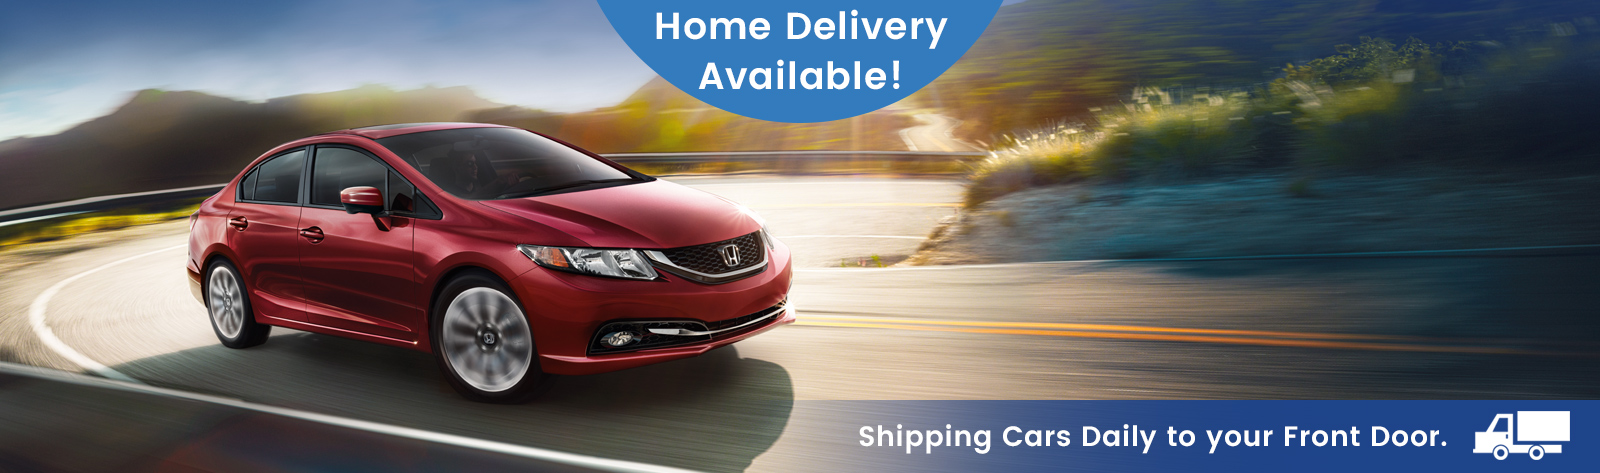 Home Delivery Available! Shipping Cars Daily to Your Front Door.